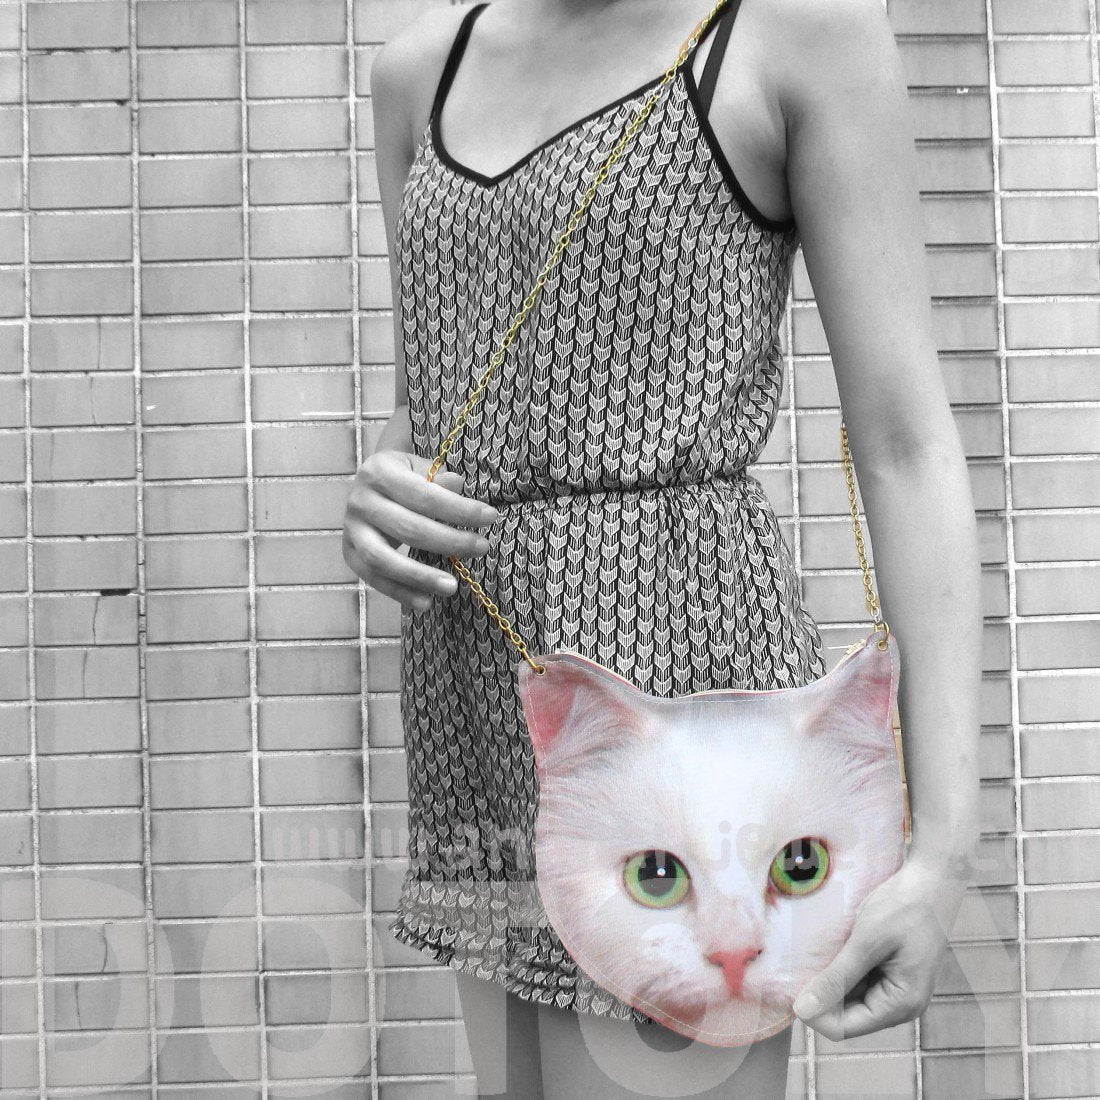 White Kitty Cat Head Shaped Vinyl Animal Photo Print Shoulder Bag